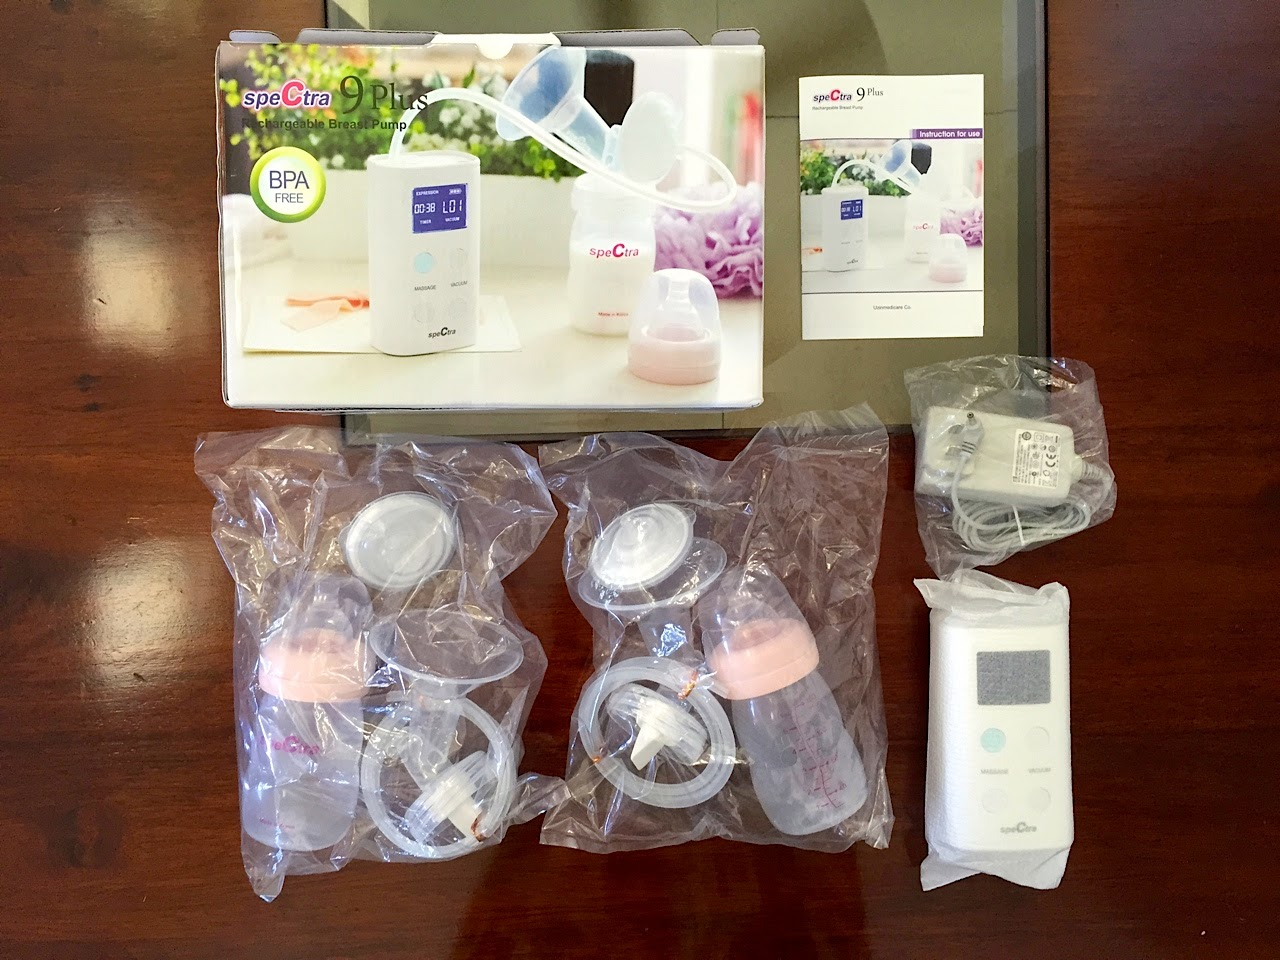 spectra s1 breast pump instruction manual